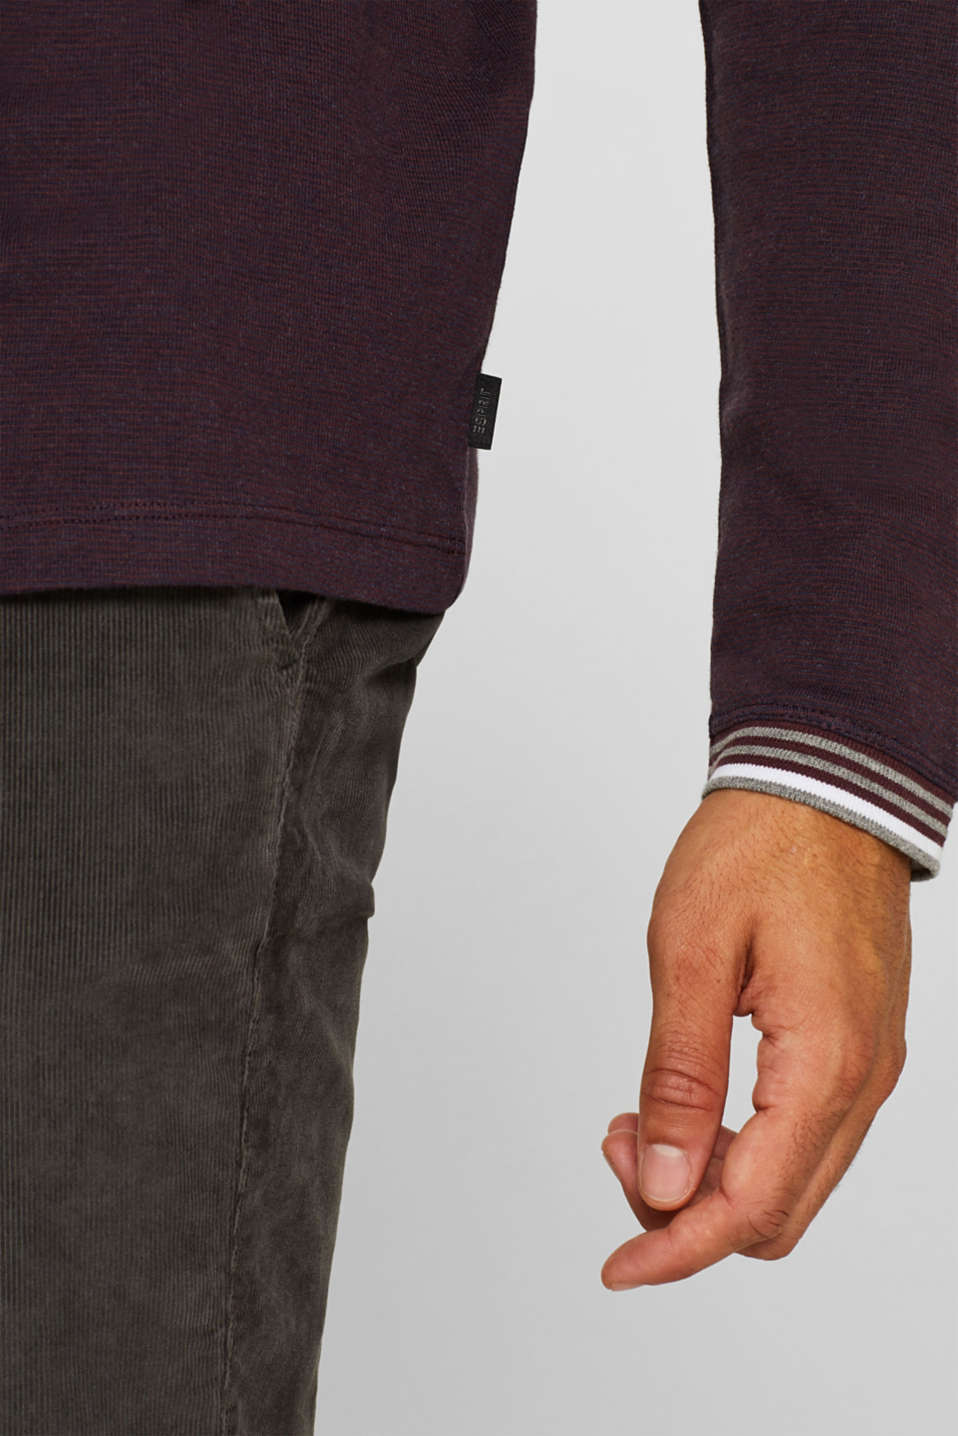 Long sleeve jersey top in a layered look, BORDEAUX RED, detail image number 1